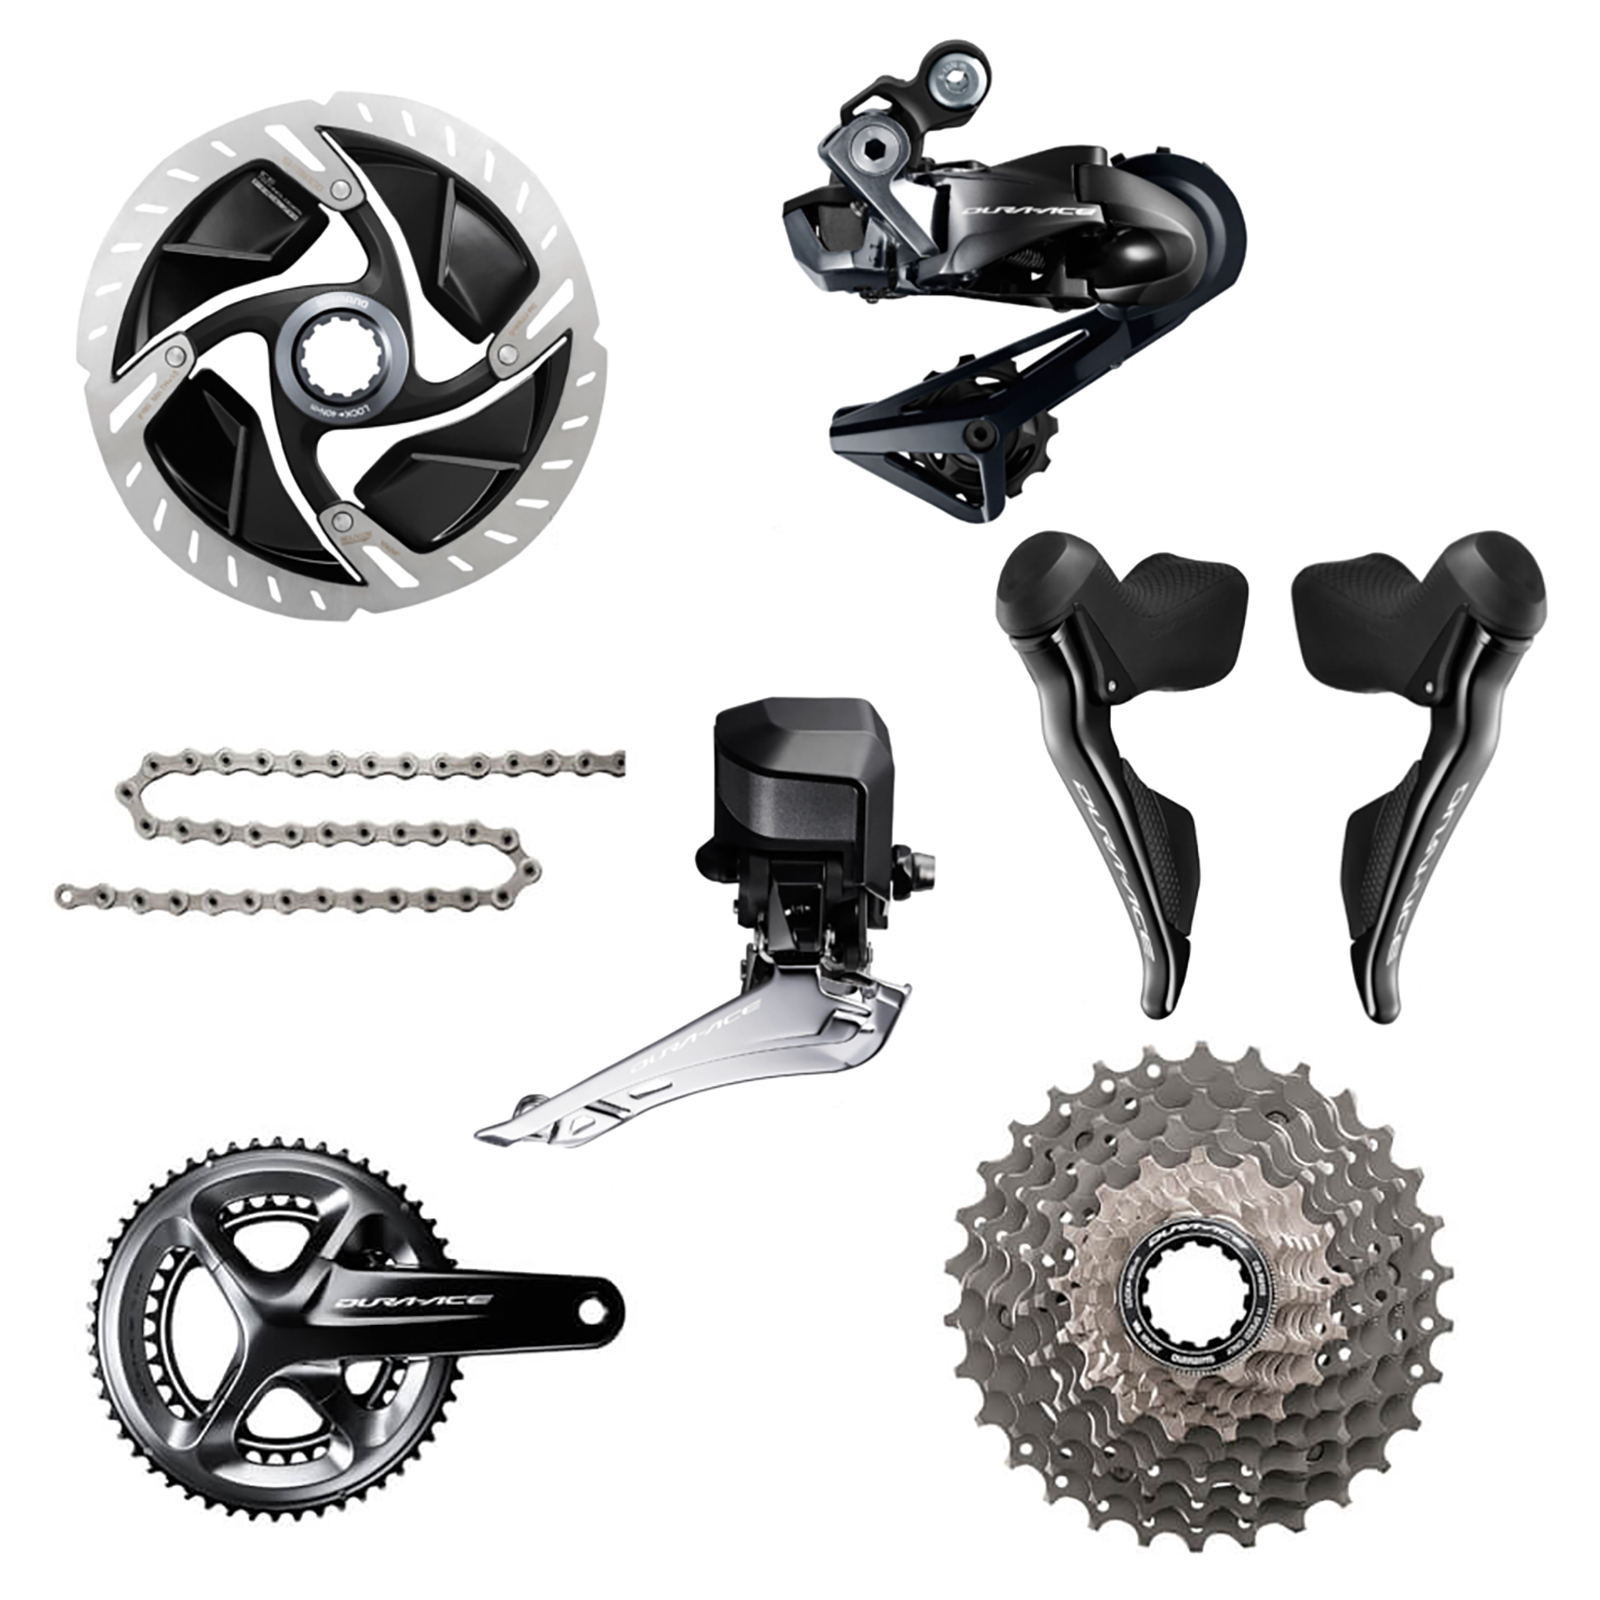 Shimano Dura Ace R9170 Di2 11 Speed Groupset - Hydraulic Disc Brake